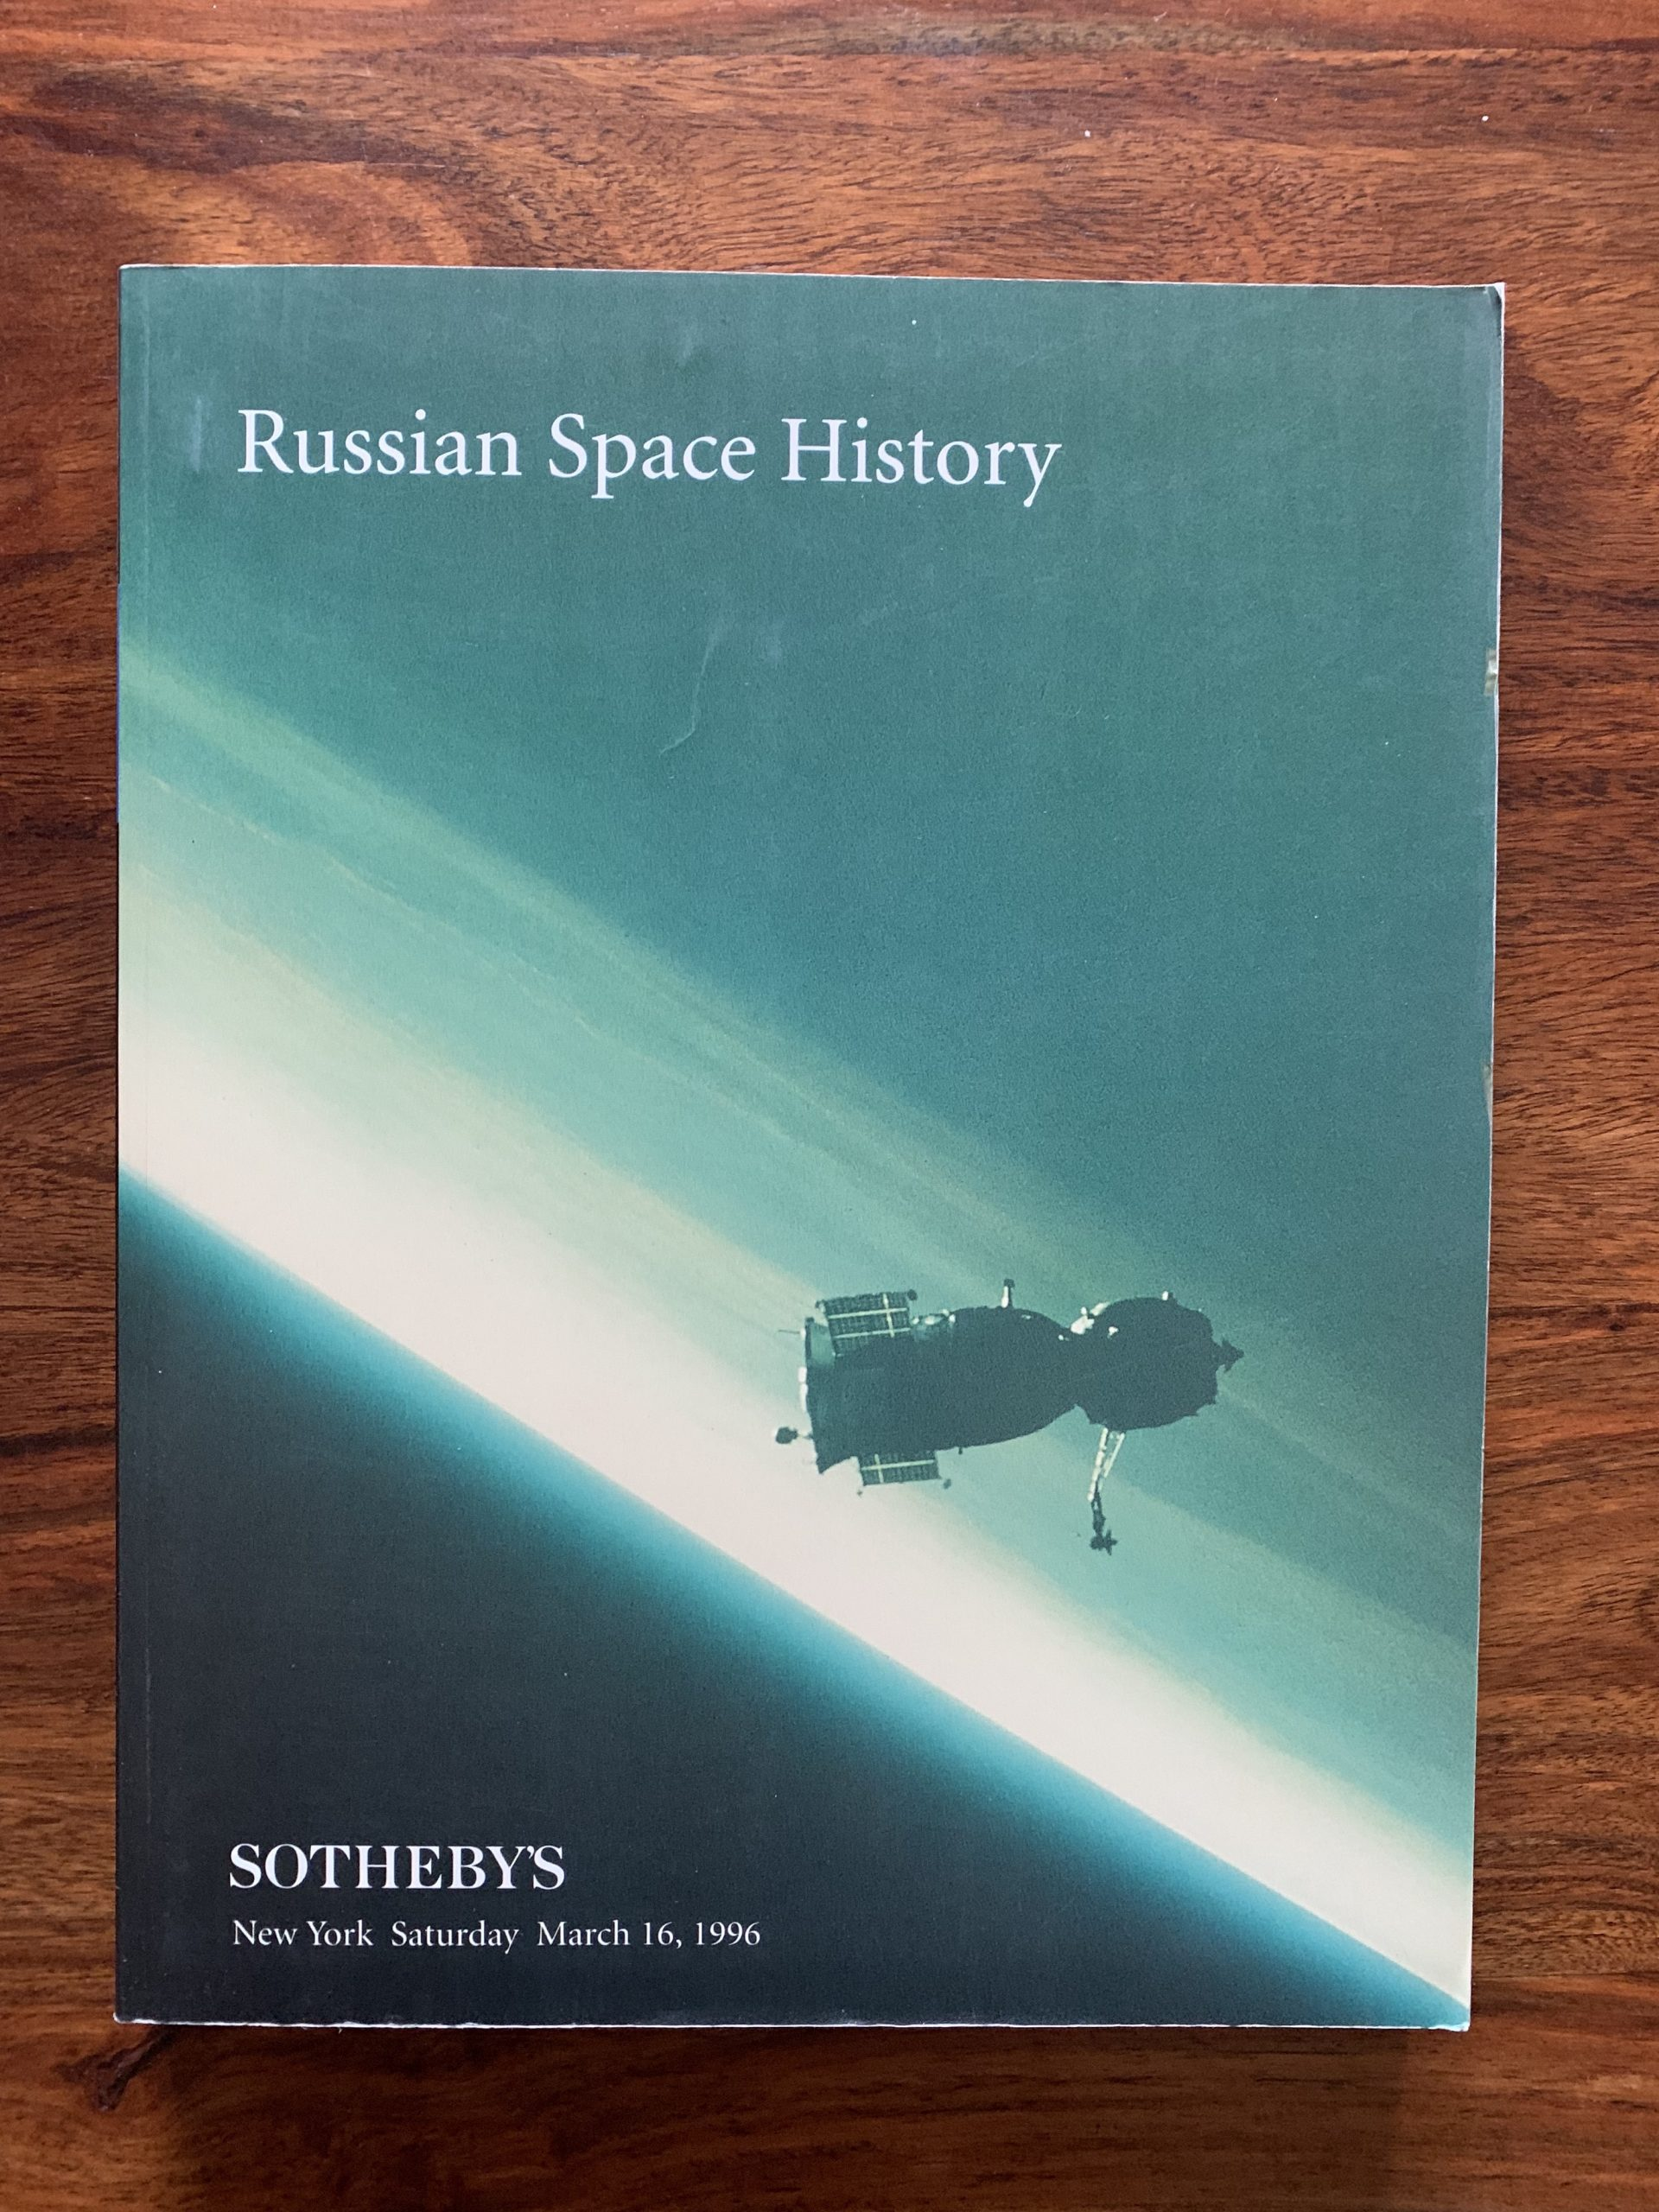 Sotheby's. Russian Space History.